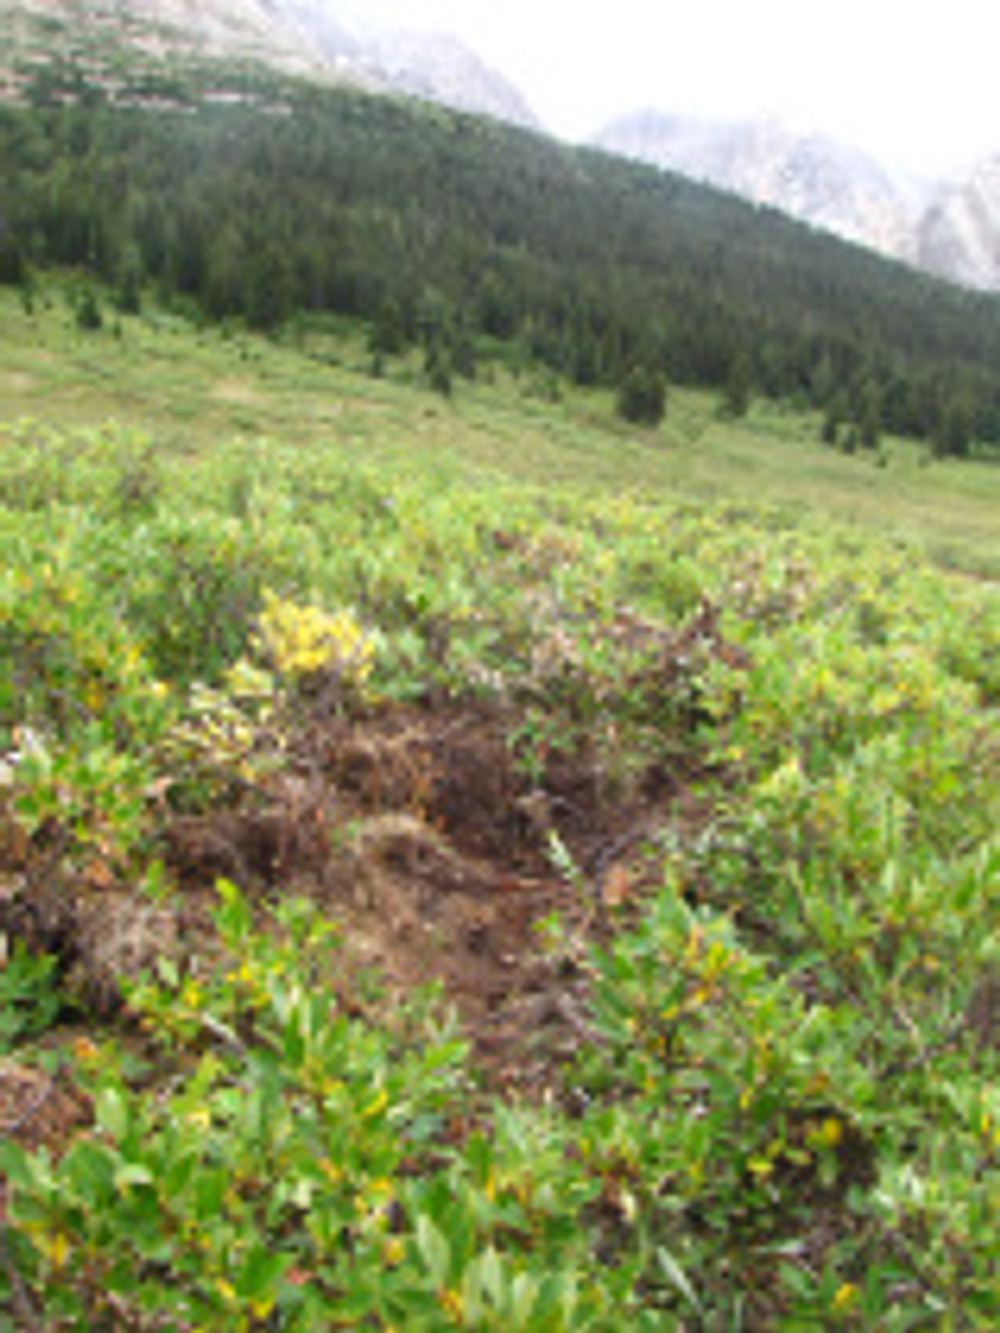 A bear dig site - probably for roots or other plant yummyness.